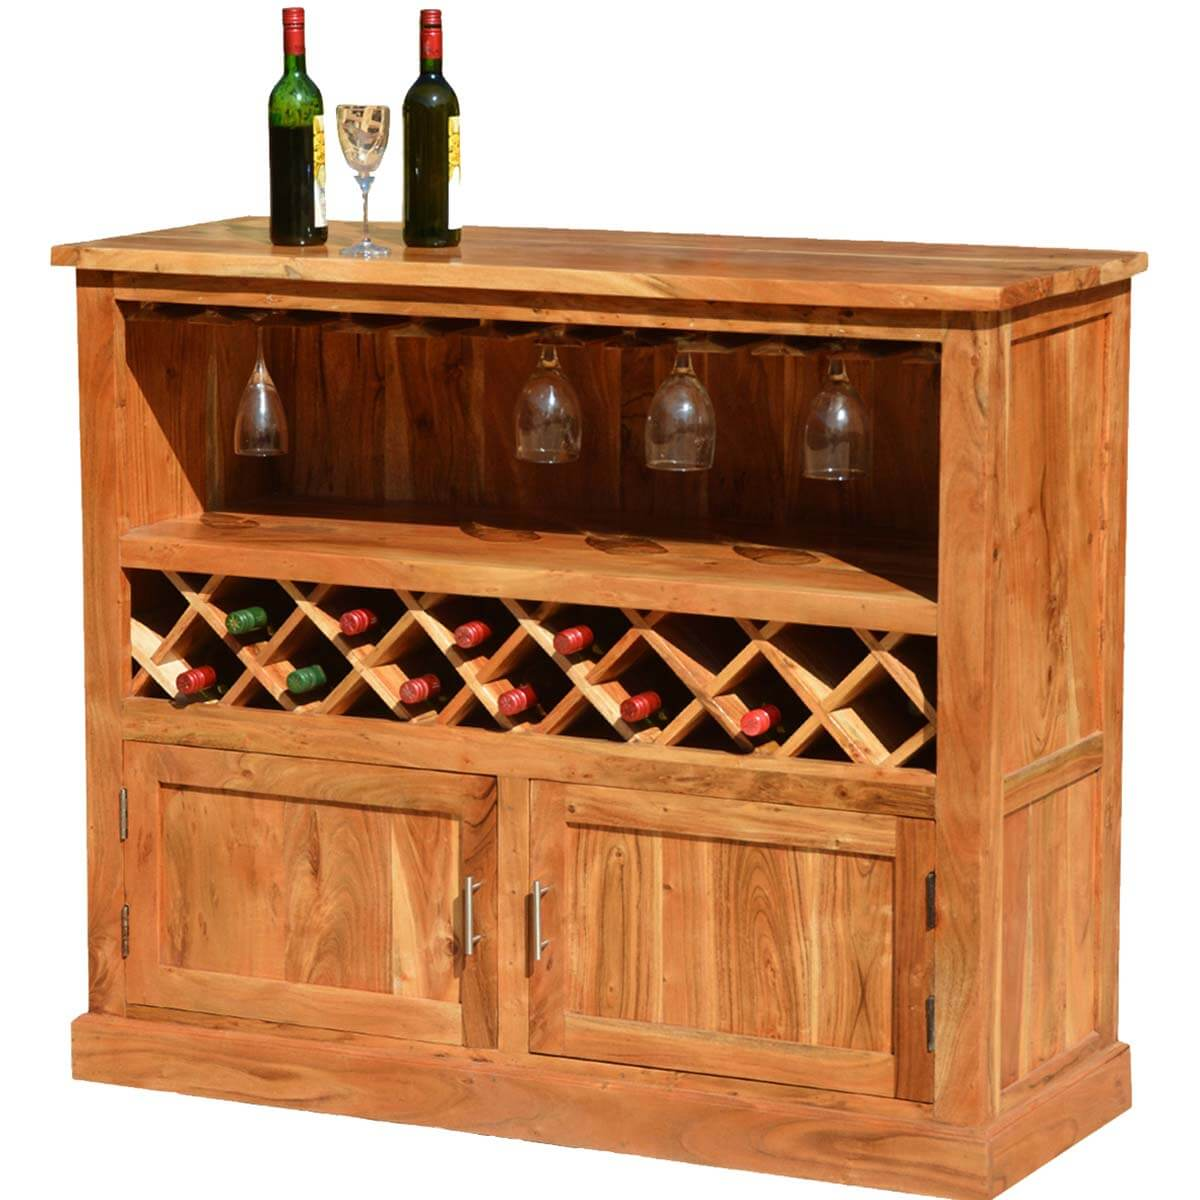 Modern Wine Rack Furniture Modern Rustic Acacia Wood 13 Bottle Wine Bar Cabinet W